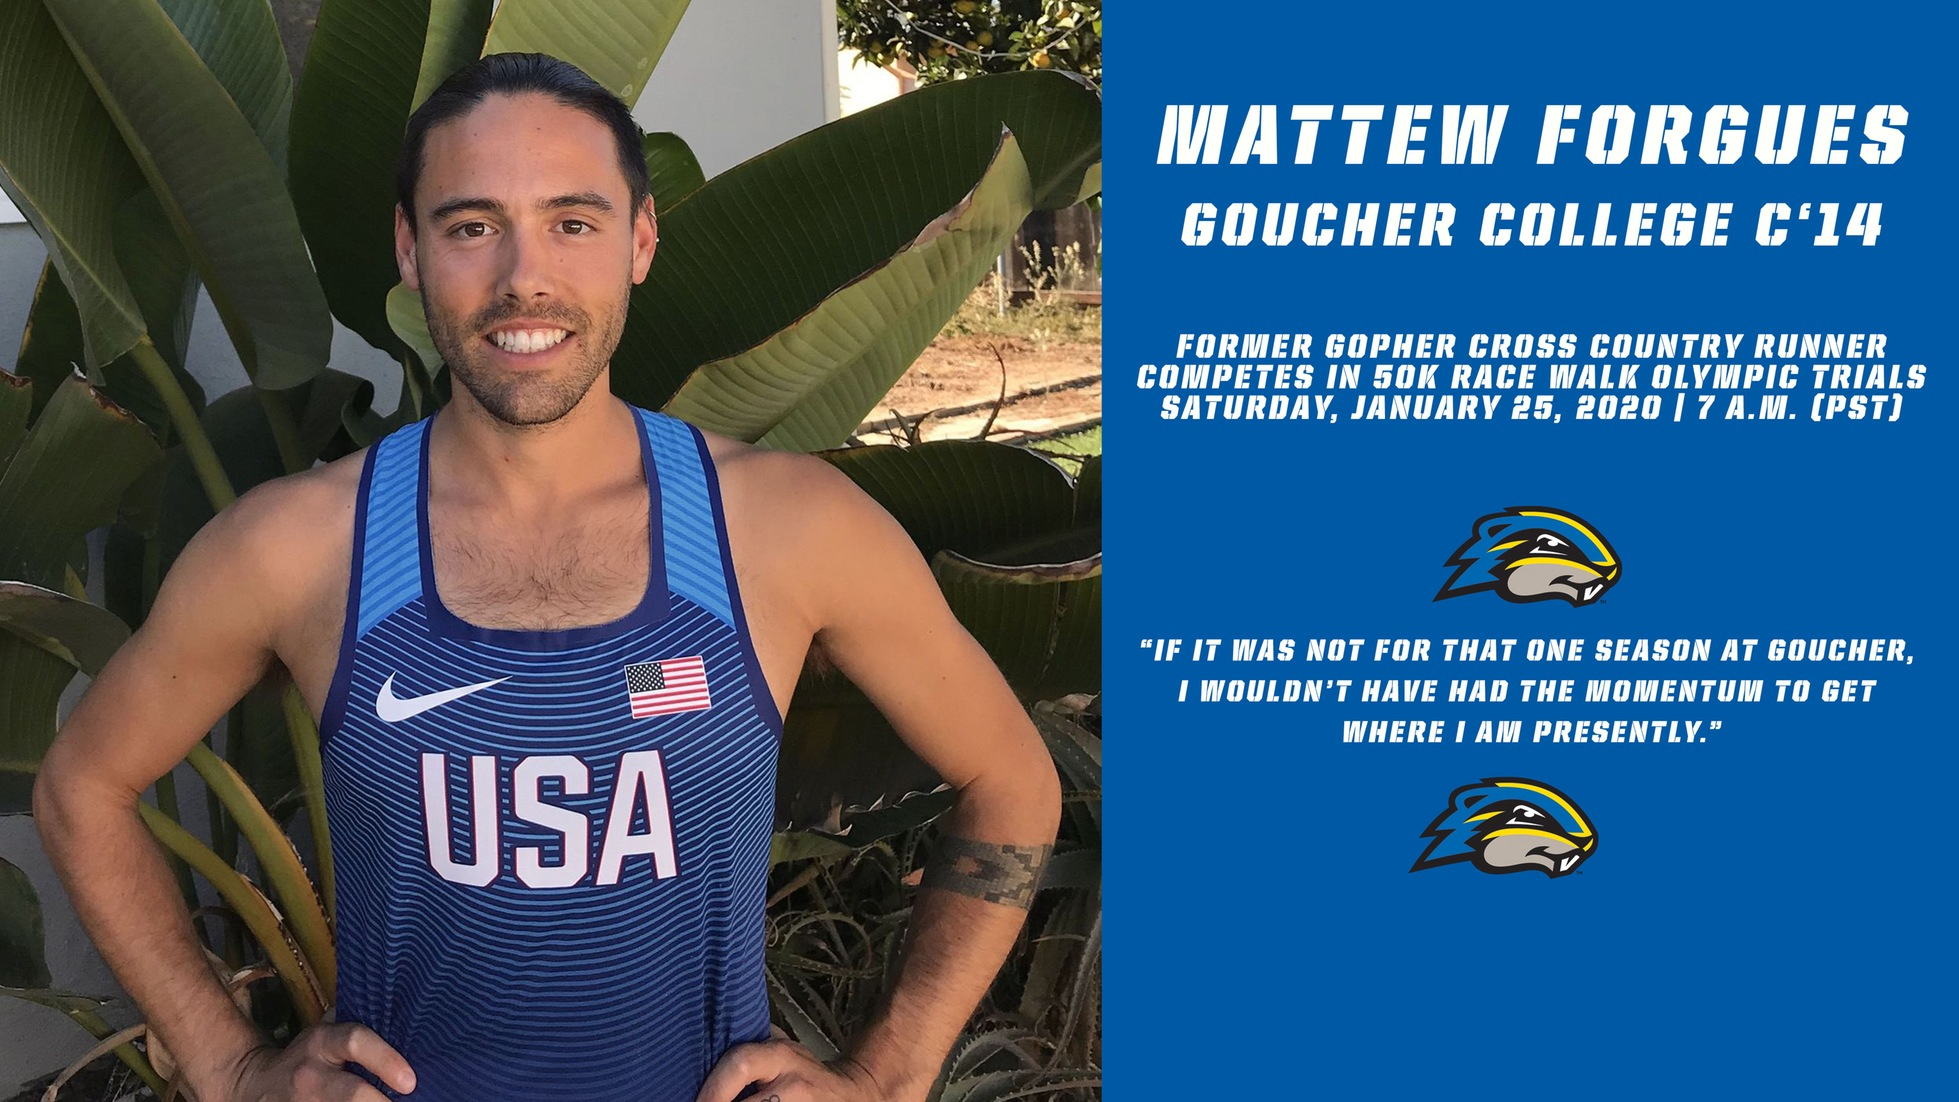 Former Cross Country Runner Matthew Forgues Attempts To Make USA Olympic Team In 50K Race Walk On Saturday